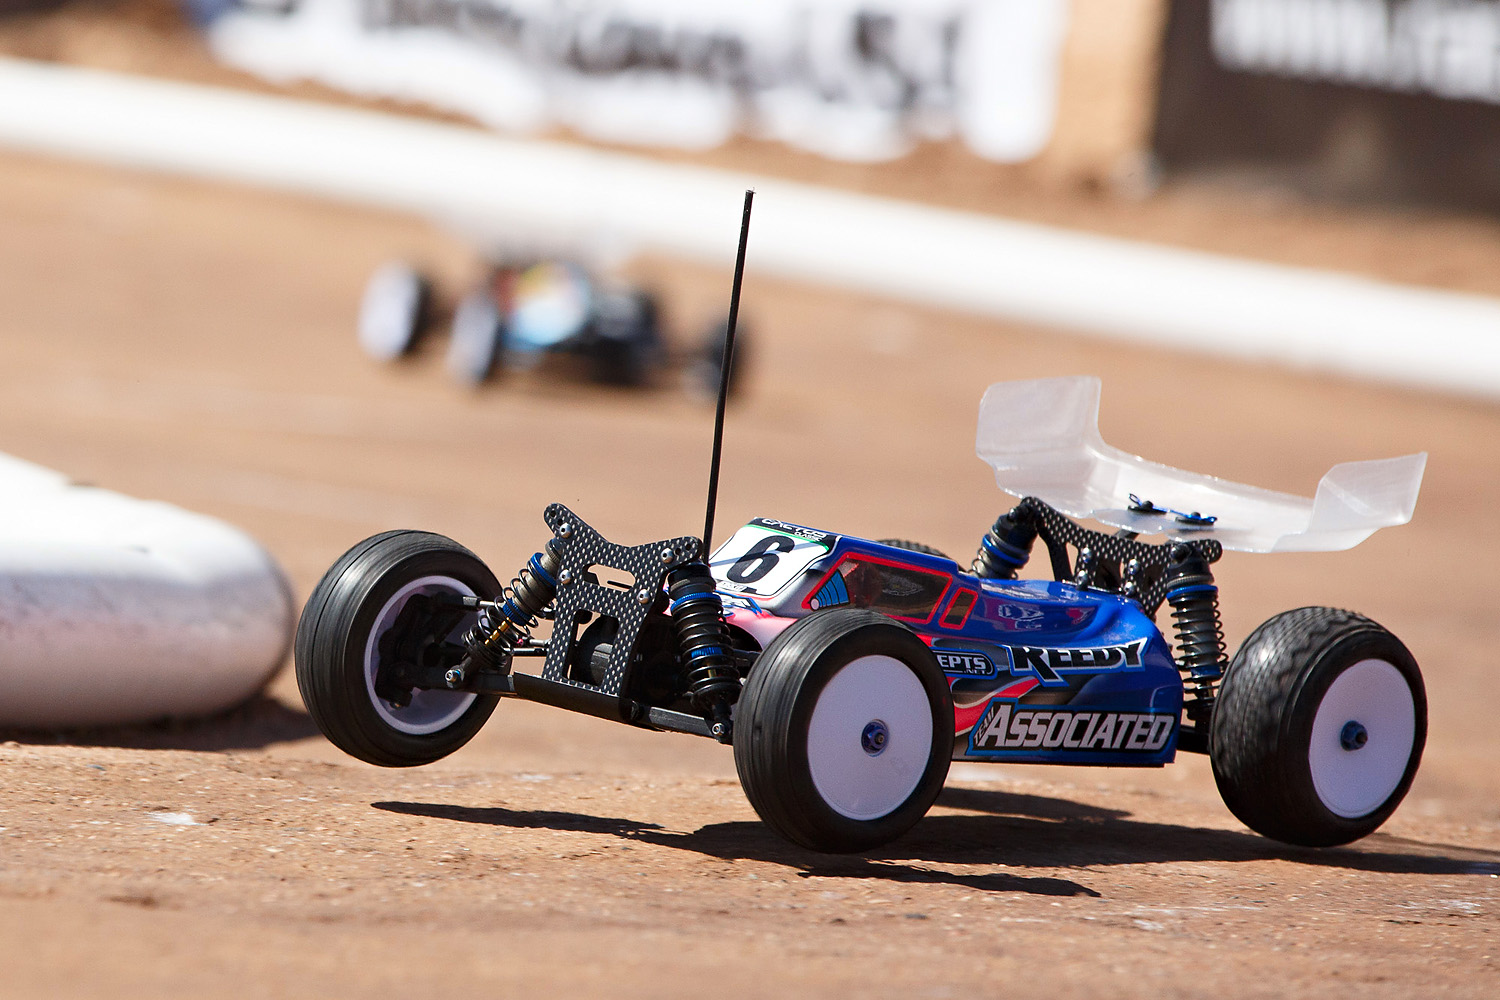 One final time under the sun – 2014 Cactus Classic Preview